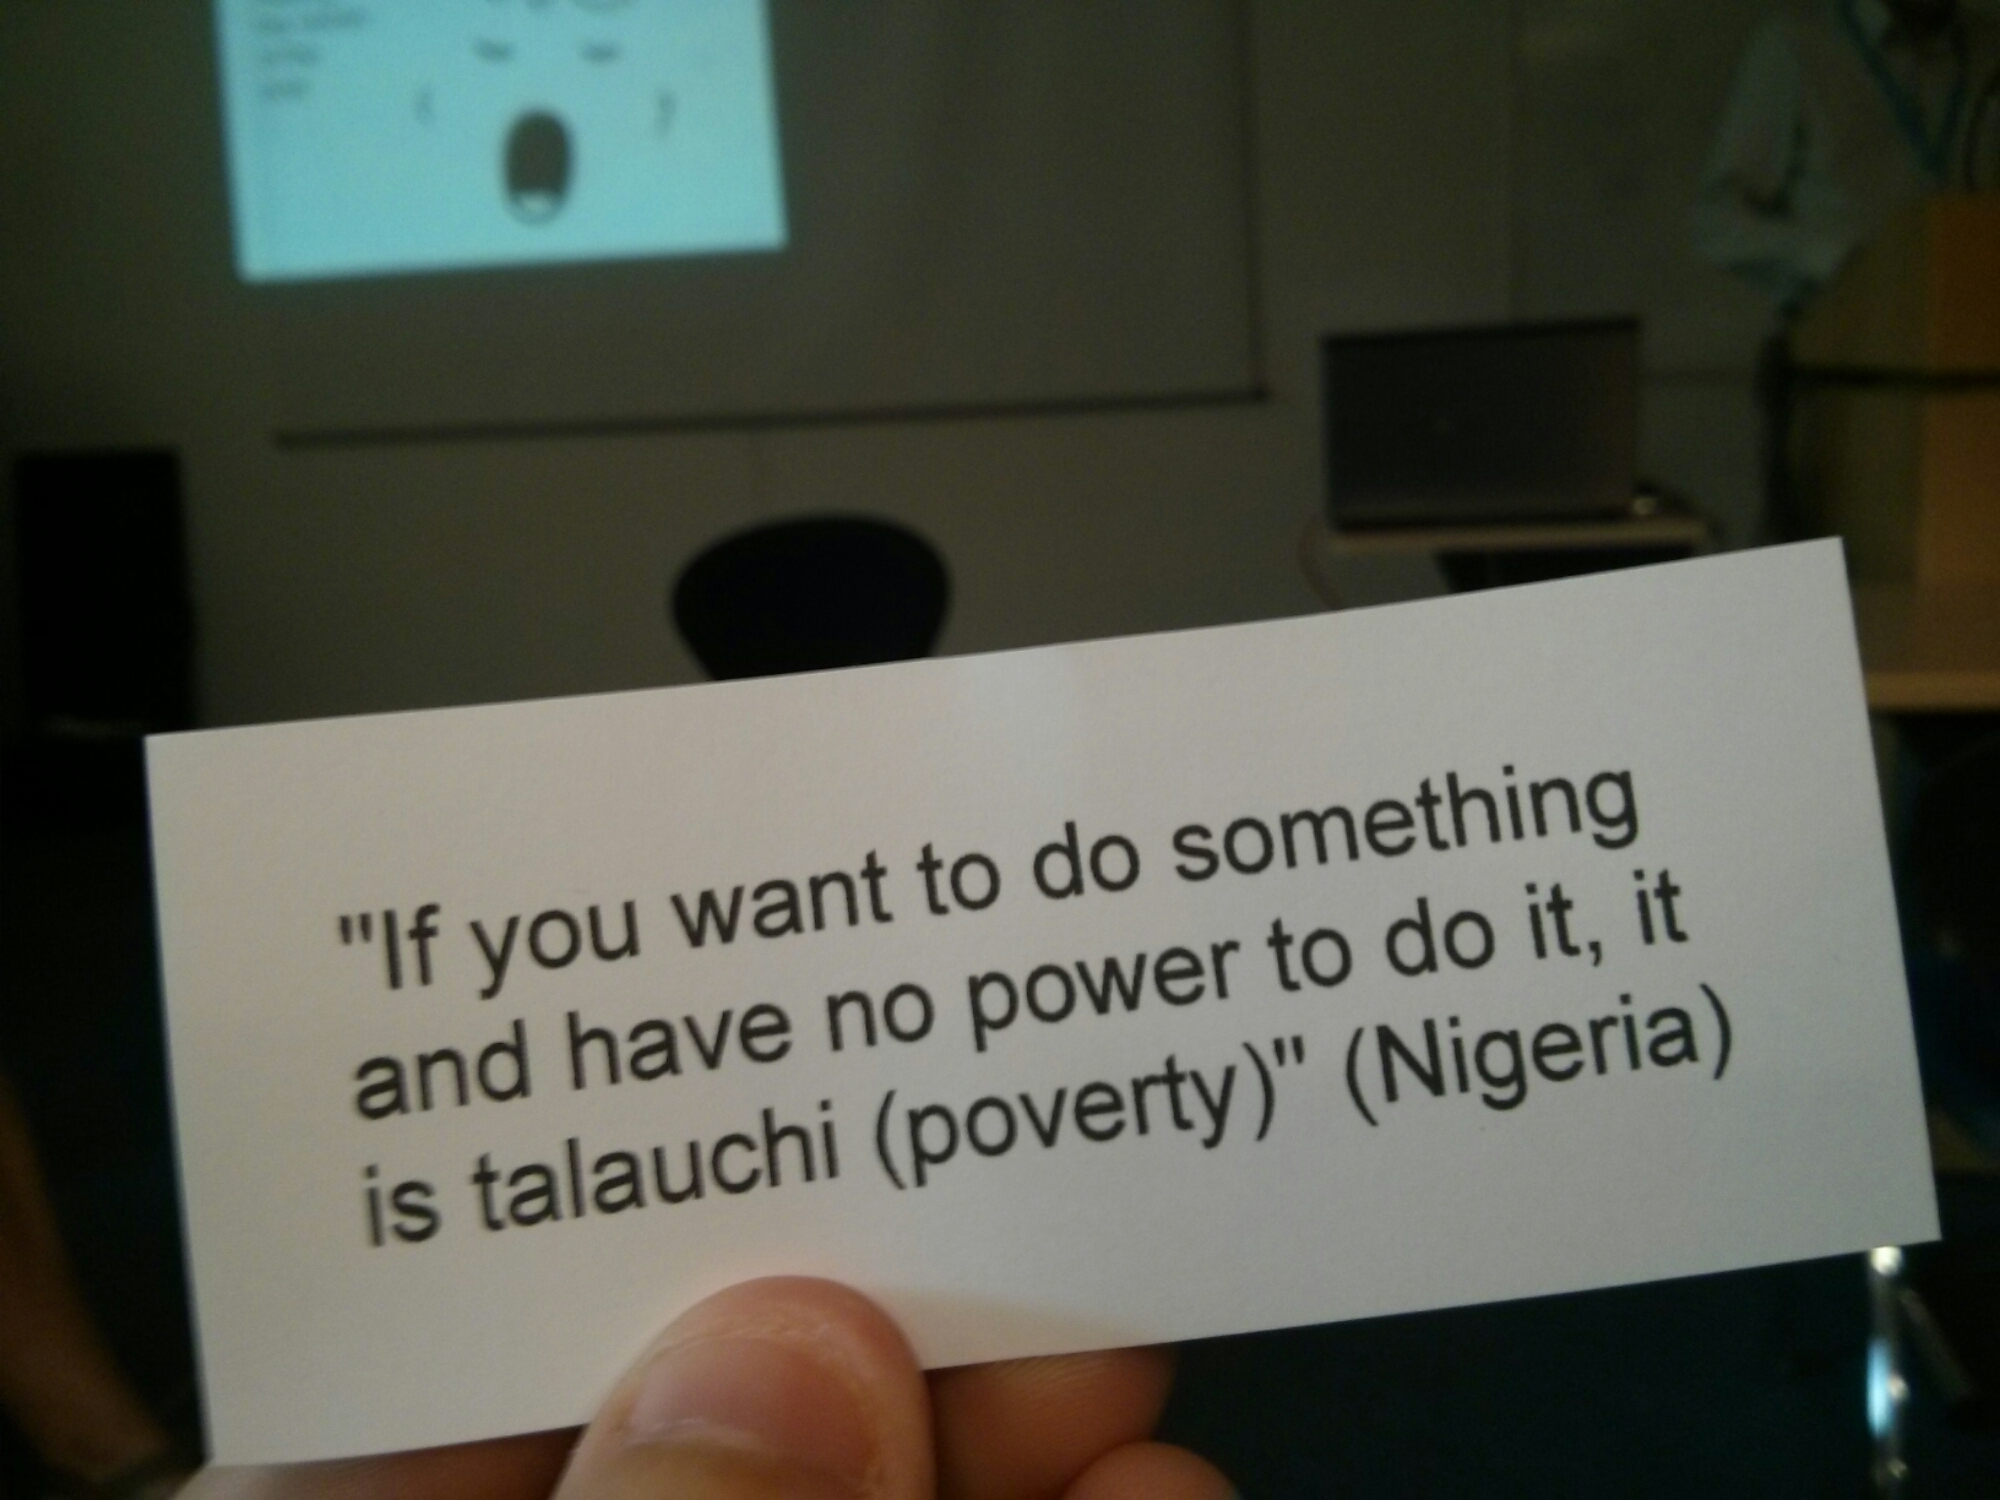 If you want to do something and have no power to do it, it is poverty